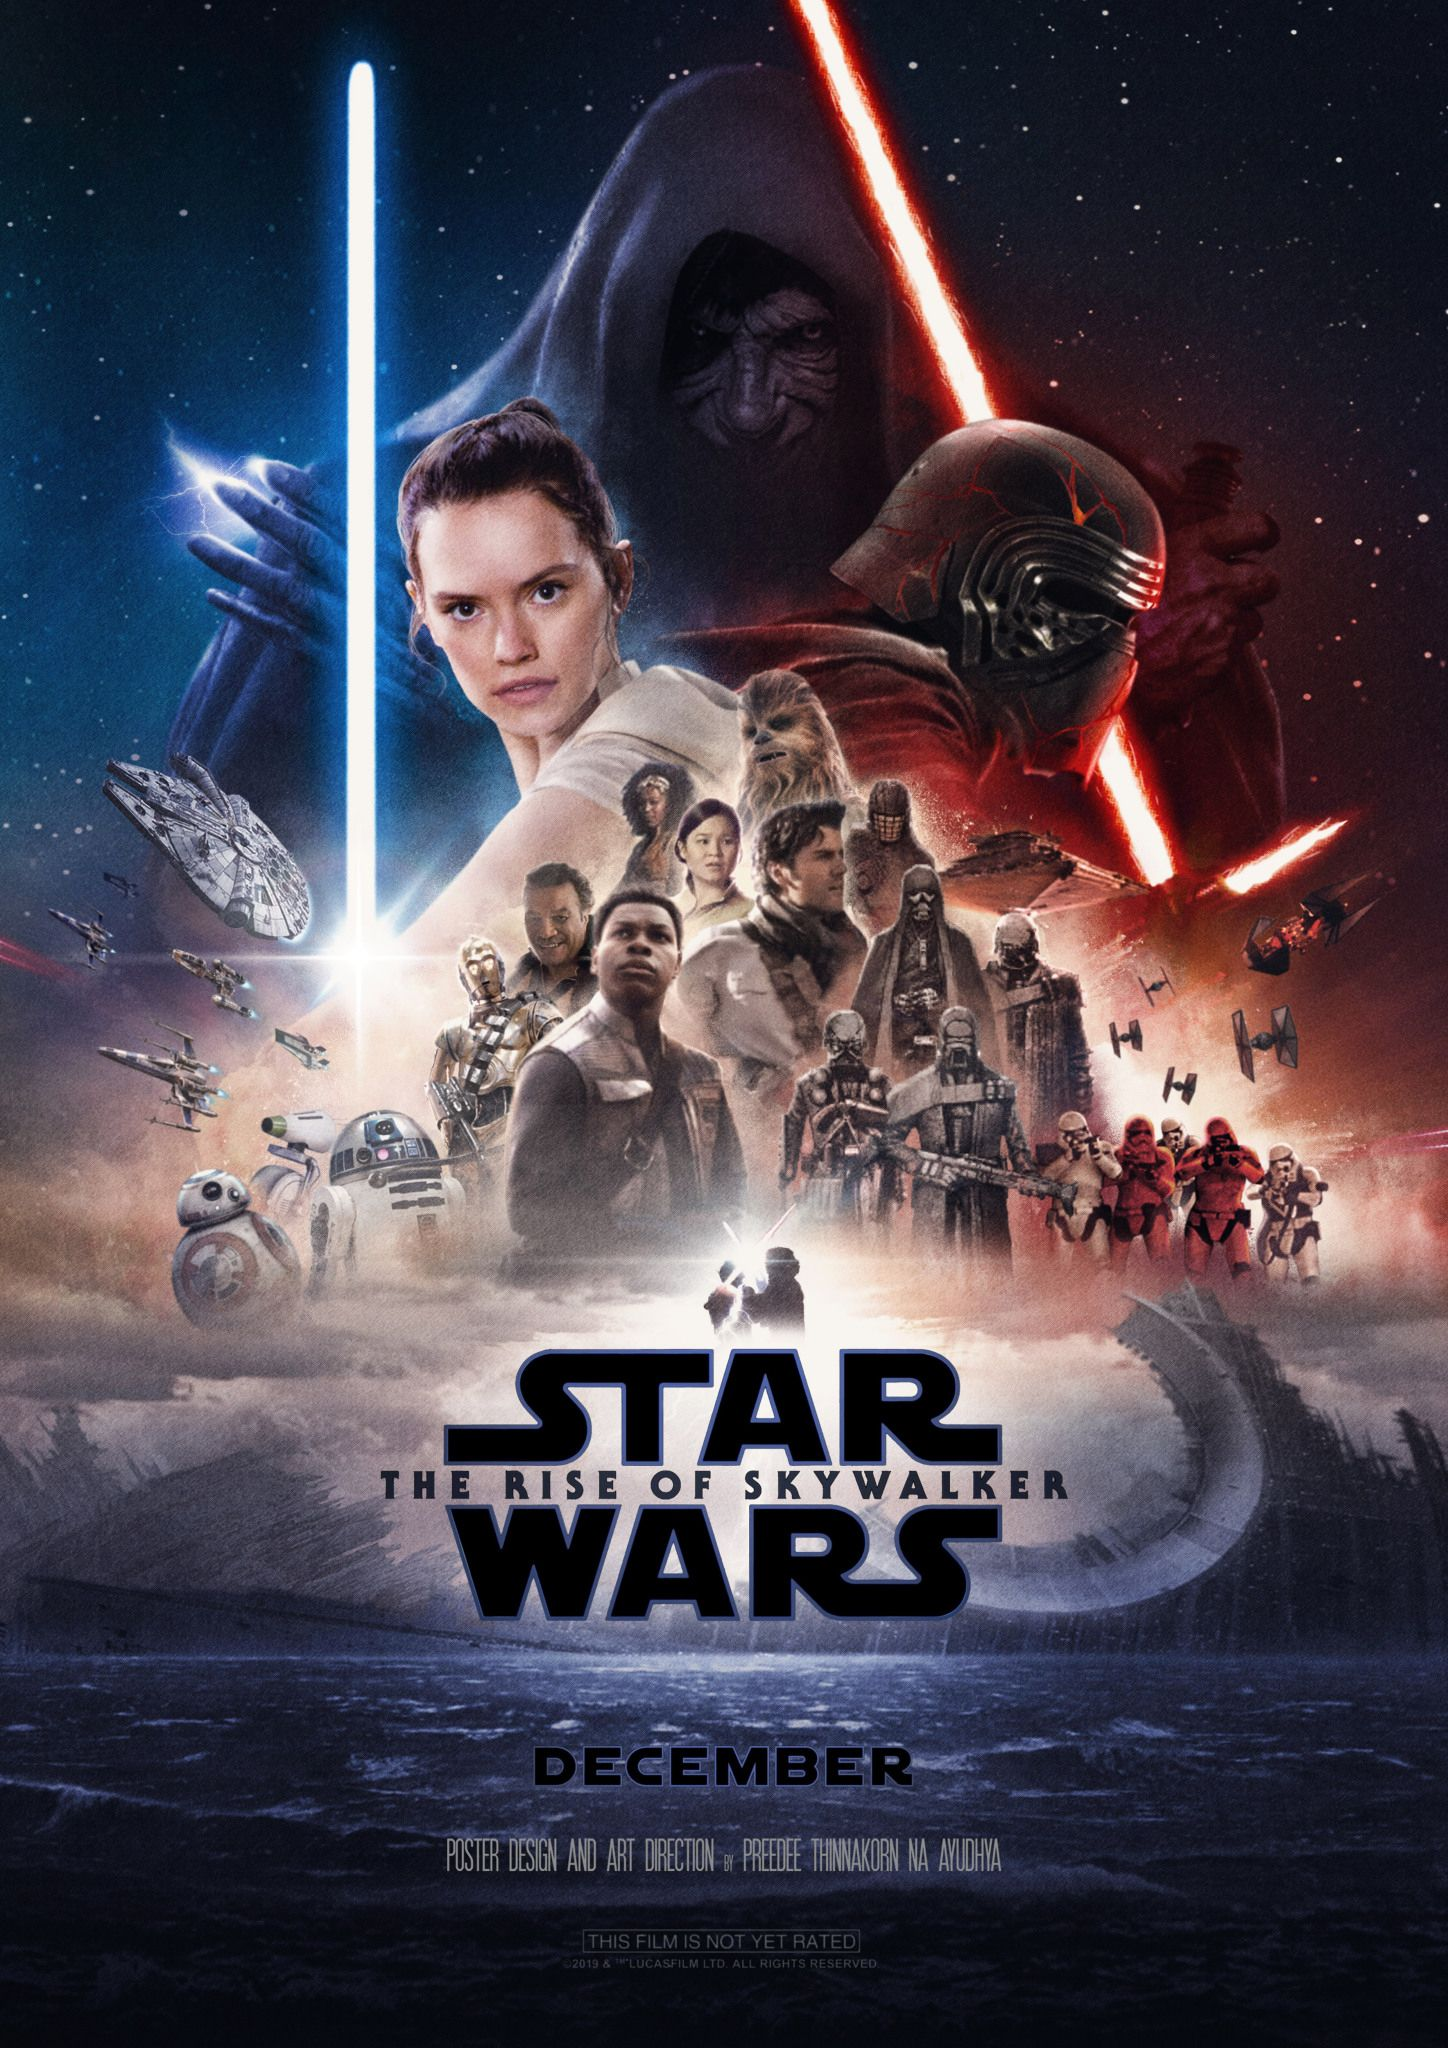 Starwars The Rise Of Skywalker Poster By Preedee Theriseofskywalker Rey Daisyridley Kylor Star Wars Movies Posters Star Wars Episodes Star Wars Images